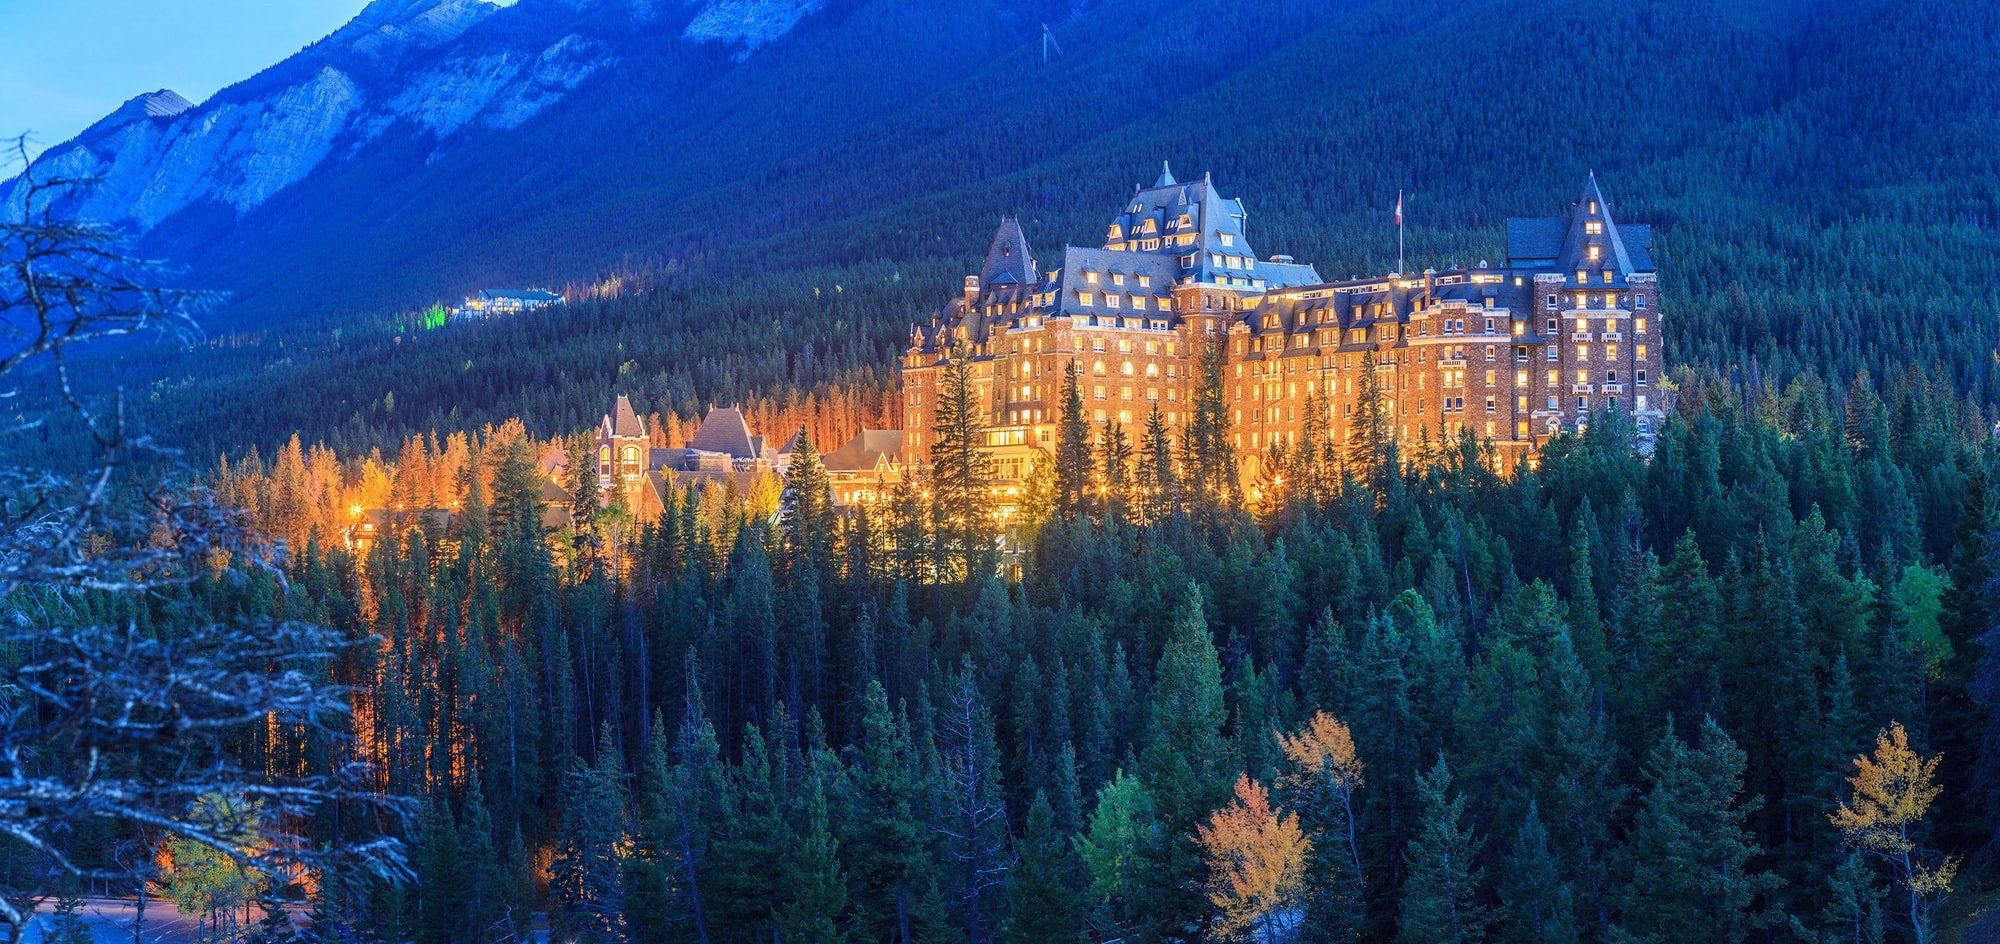 The swanky Fairmont Banff Springs is the most famous resort in the area